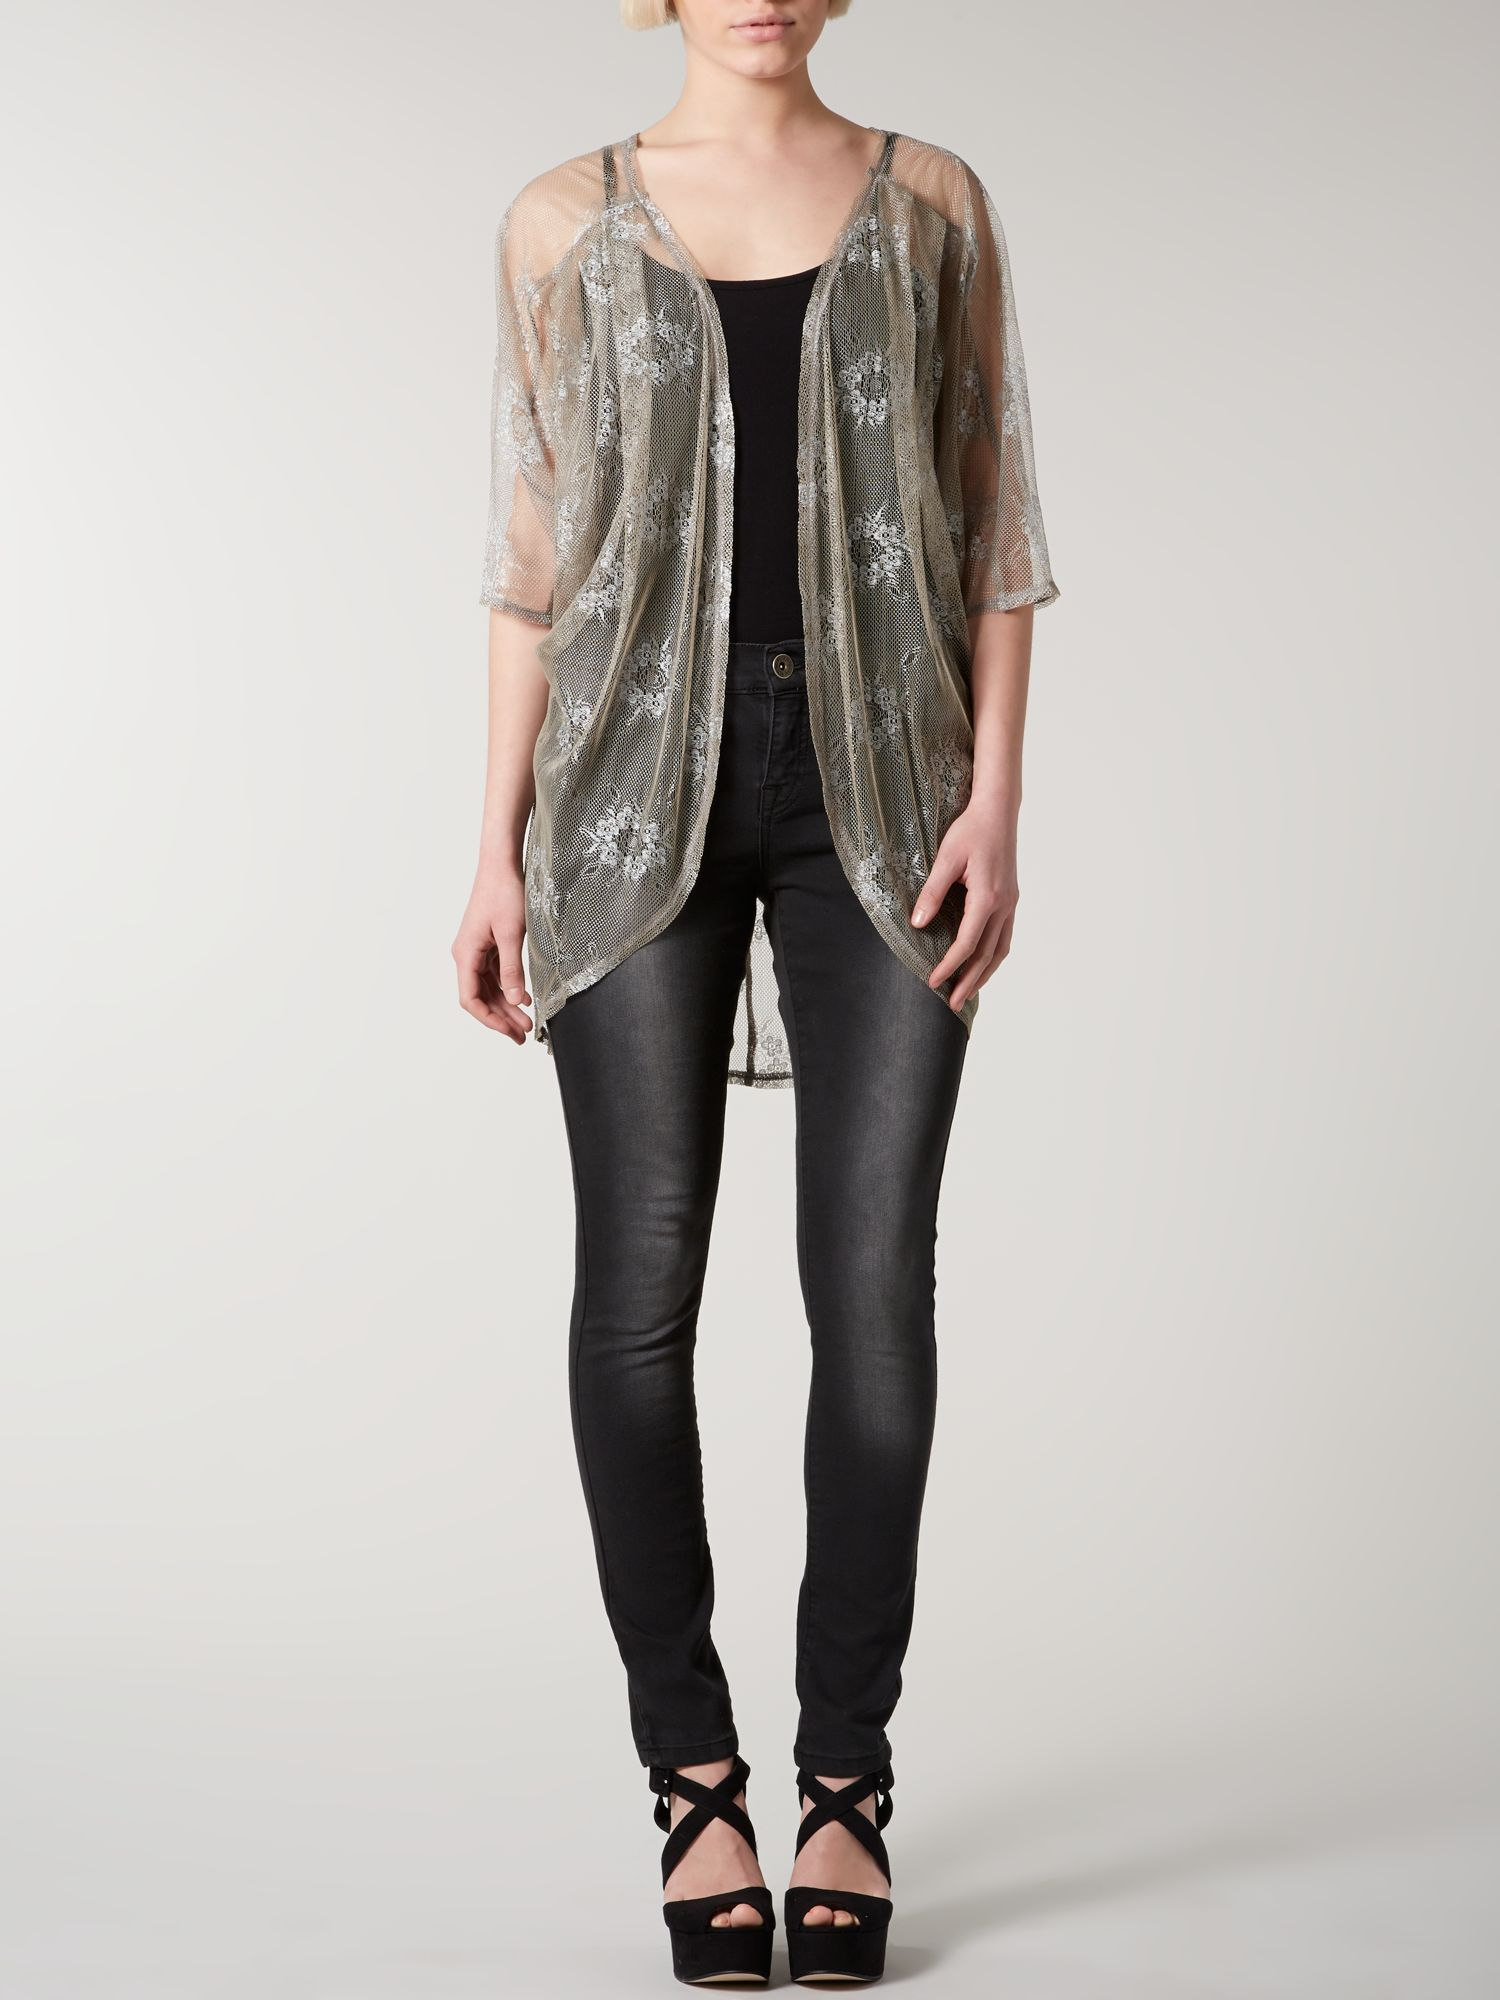 Metallic lace cover up